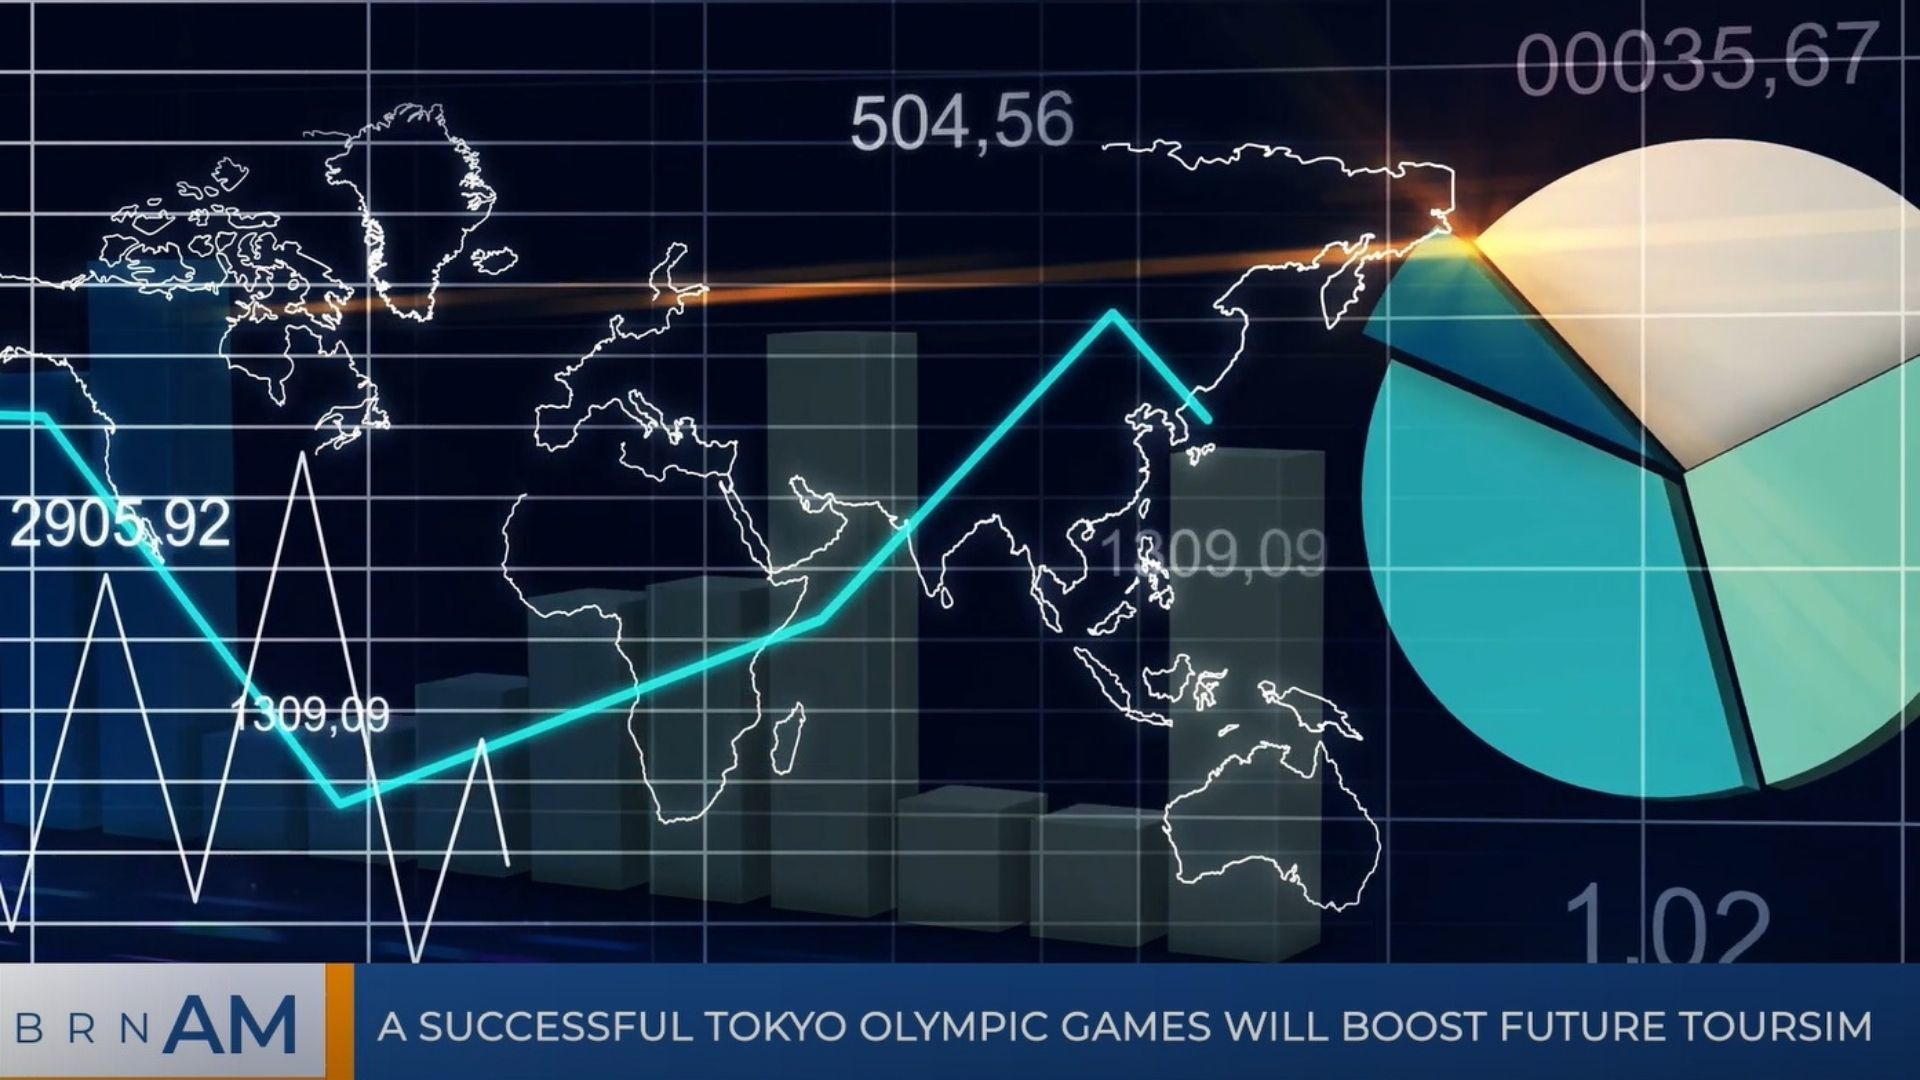 BRN AM   A successful Tokyo Olympic Games will boost future tourism